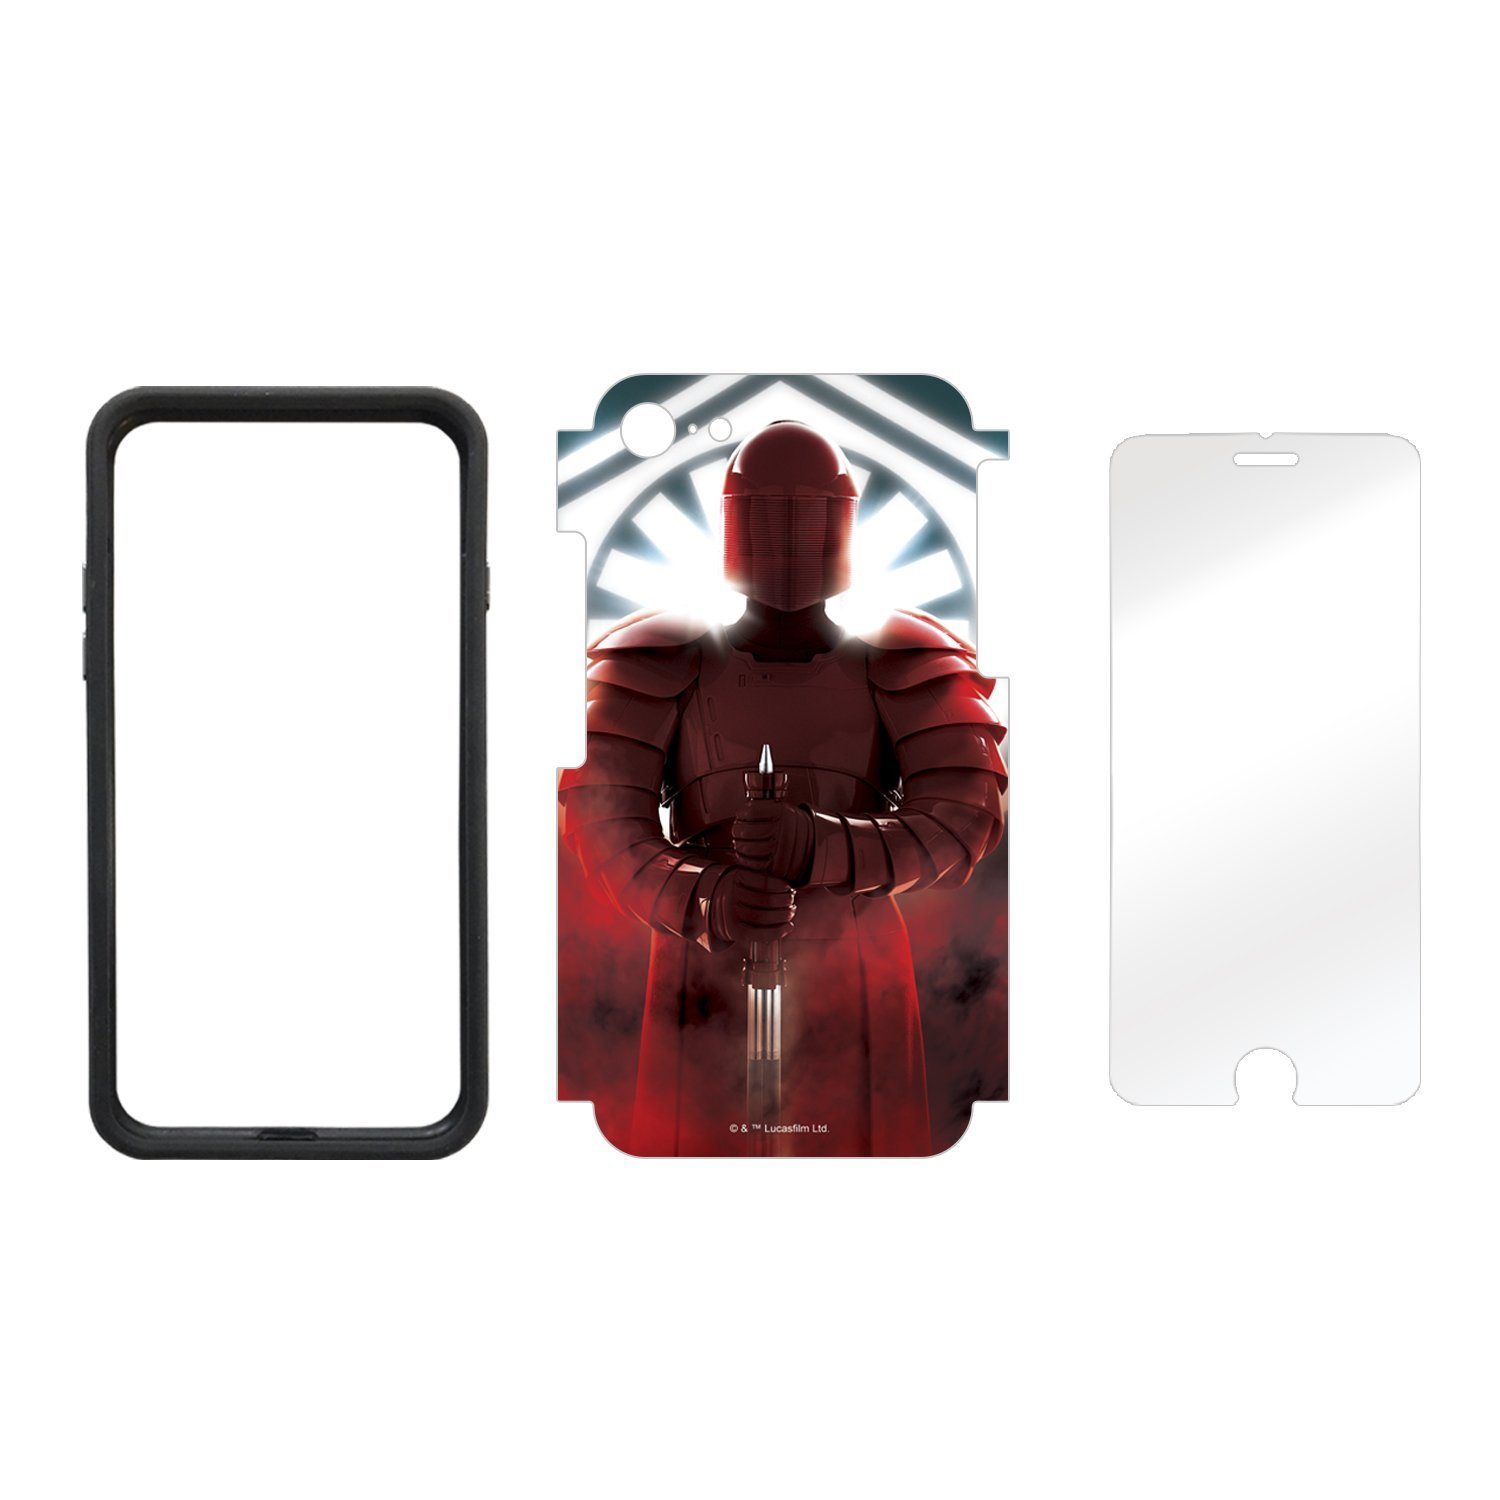 TLJ Praetorian Guard iPhone 7 & 8 Wrap Kit 2